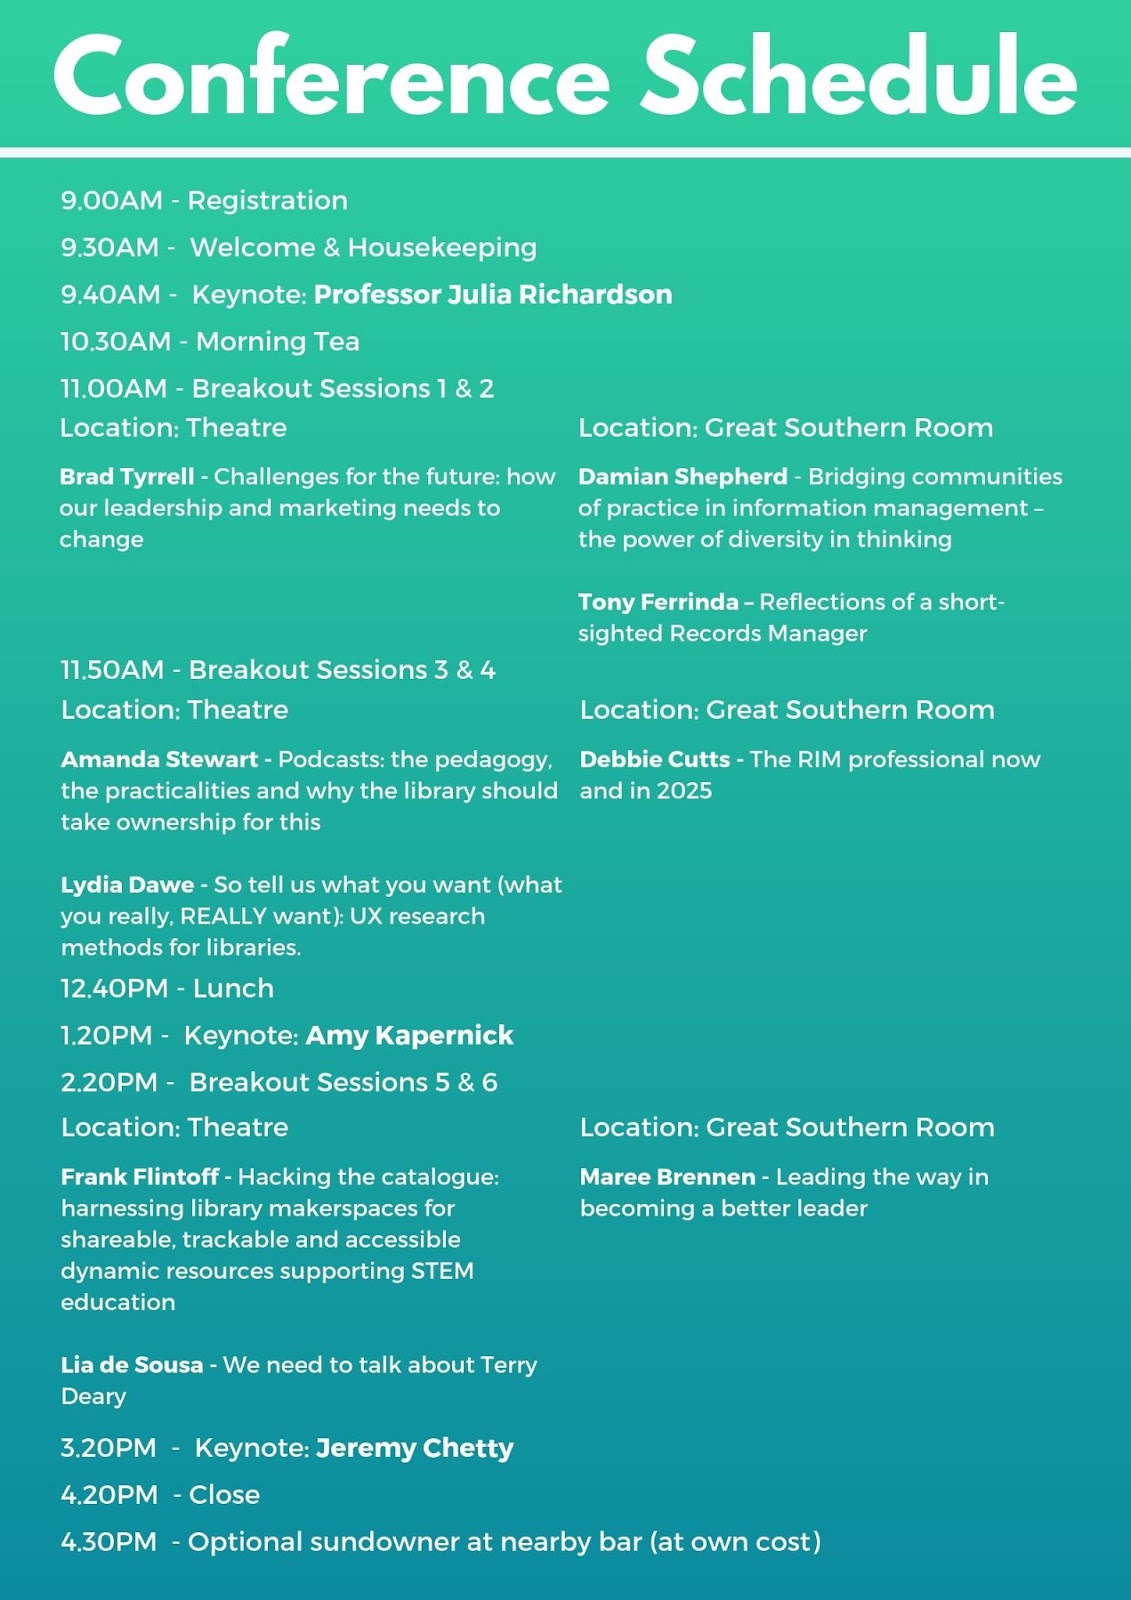 Bodies of Information Conference schedule